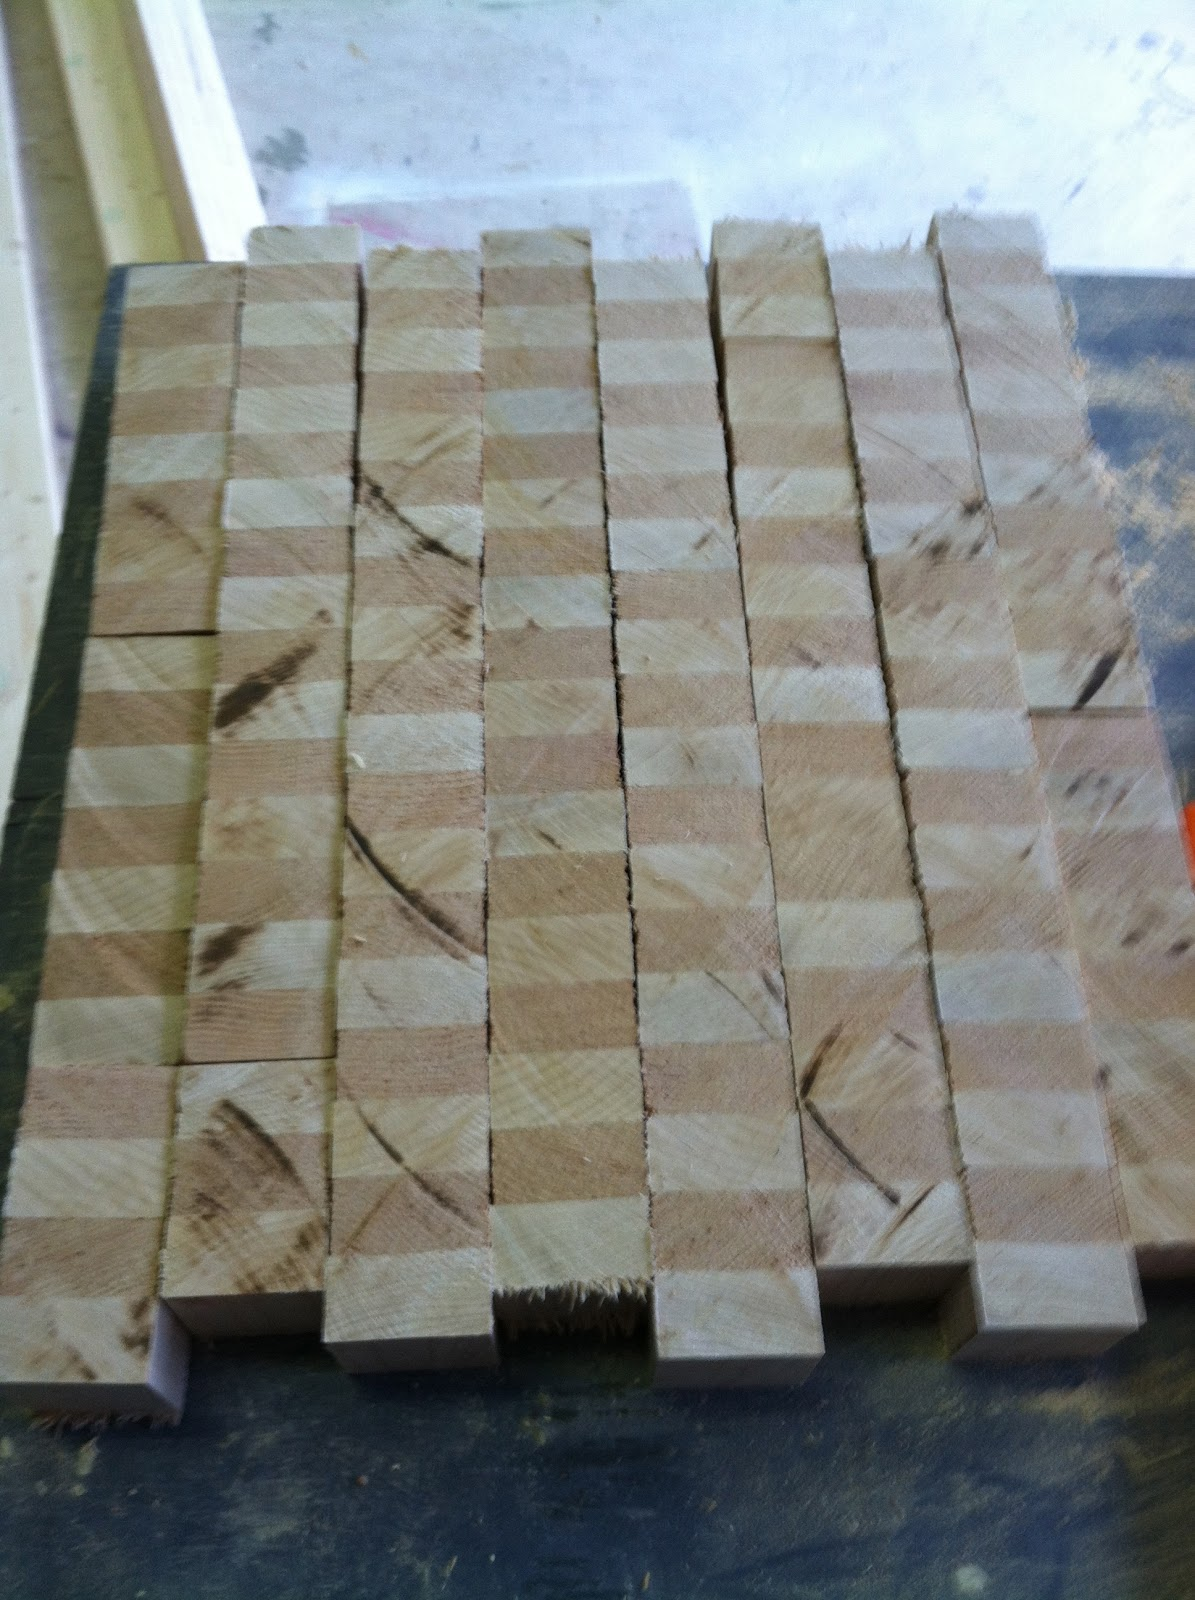 I Ended Up With 8 Strips Then Turned Them To Their End Grain And Laid In A Checkerboard Pattern